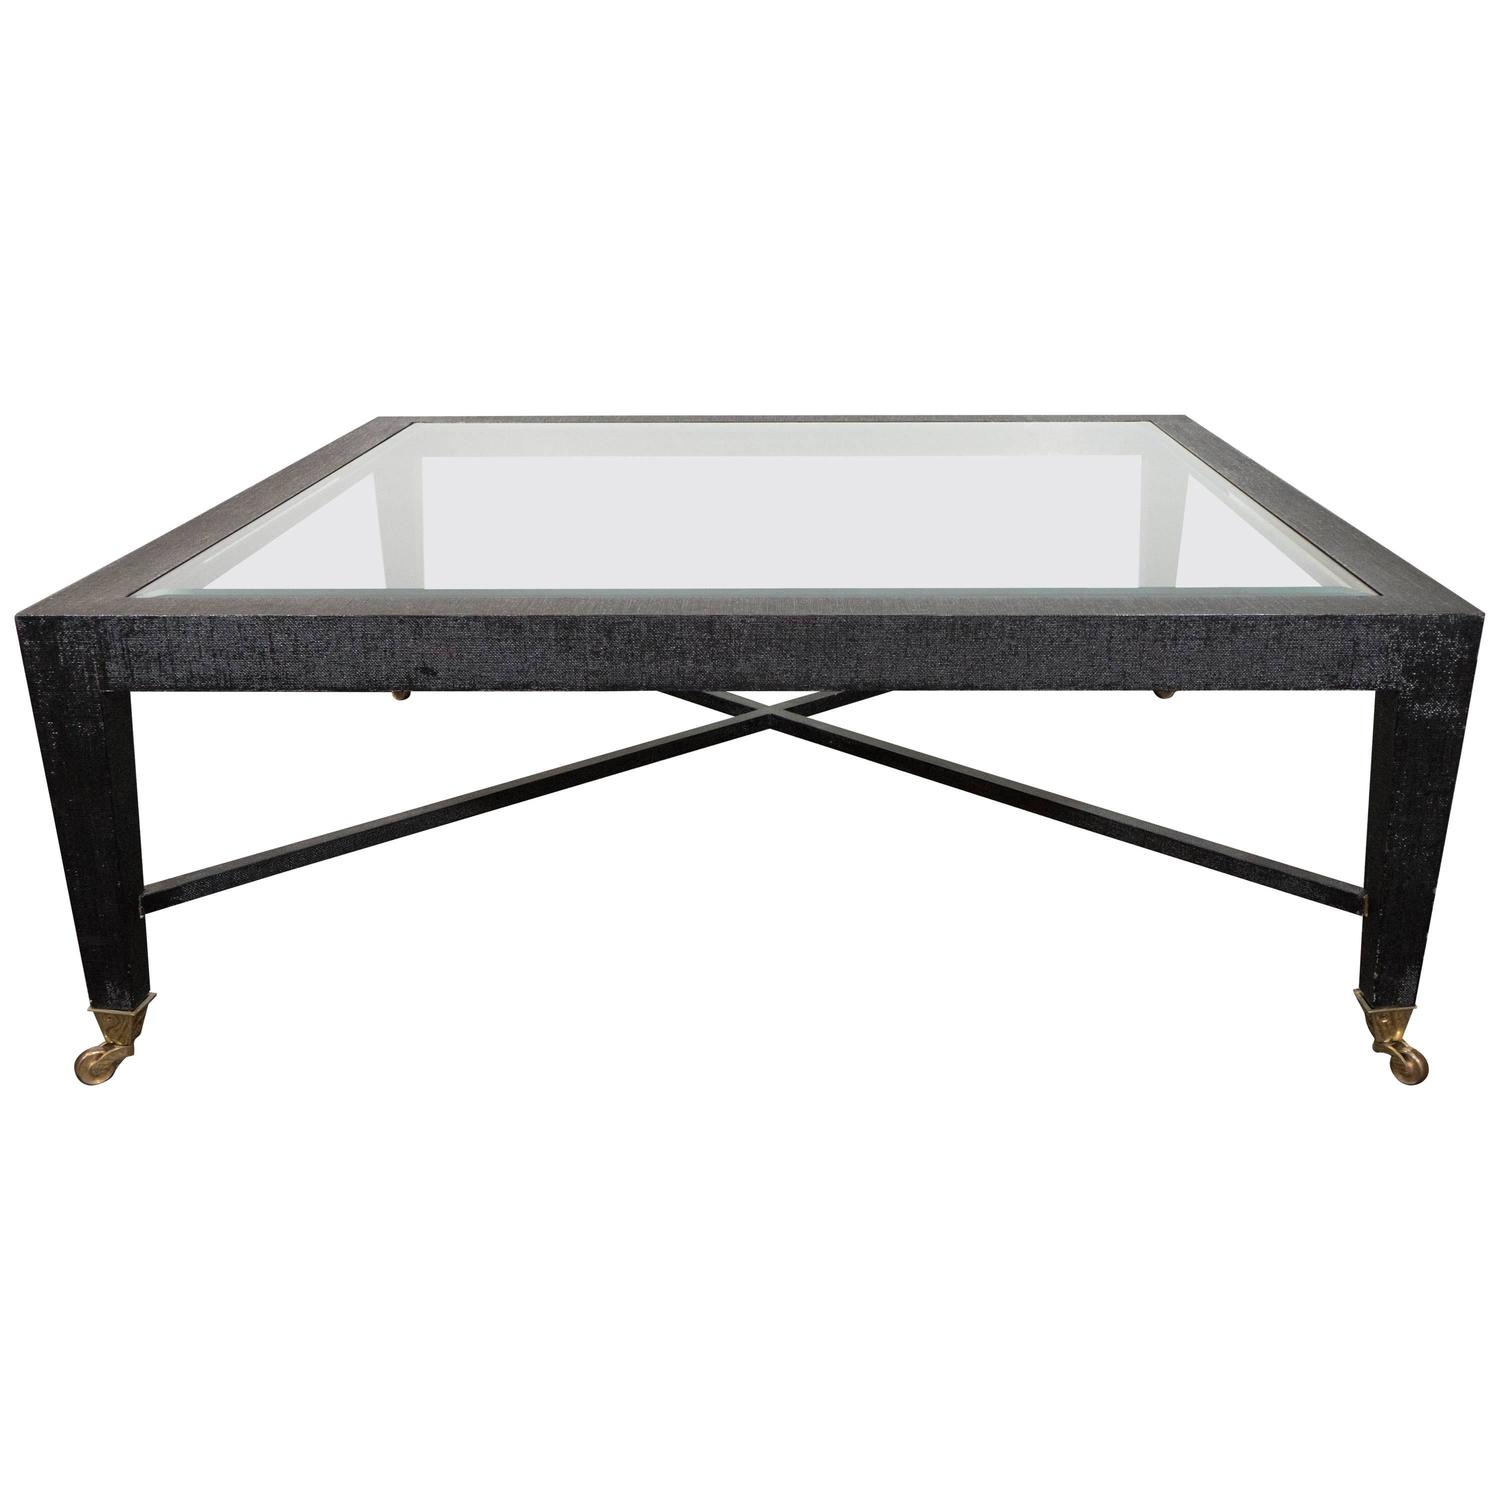 1970s Glass Top Coffee Table In Black Lacquered Linen For Sale At 1stdibs